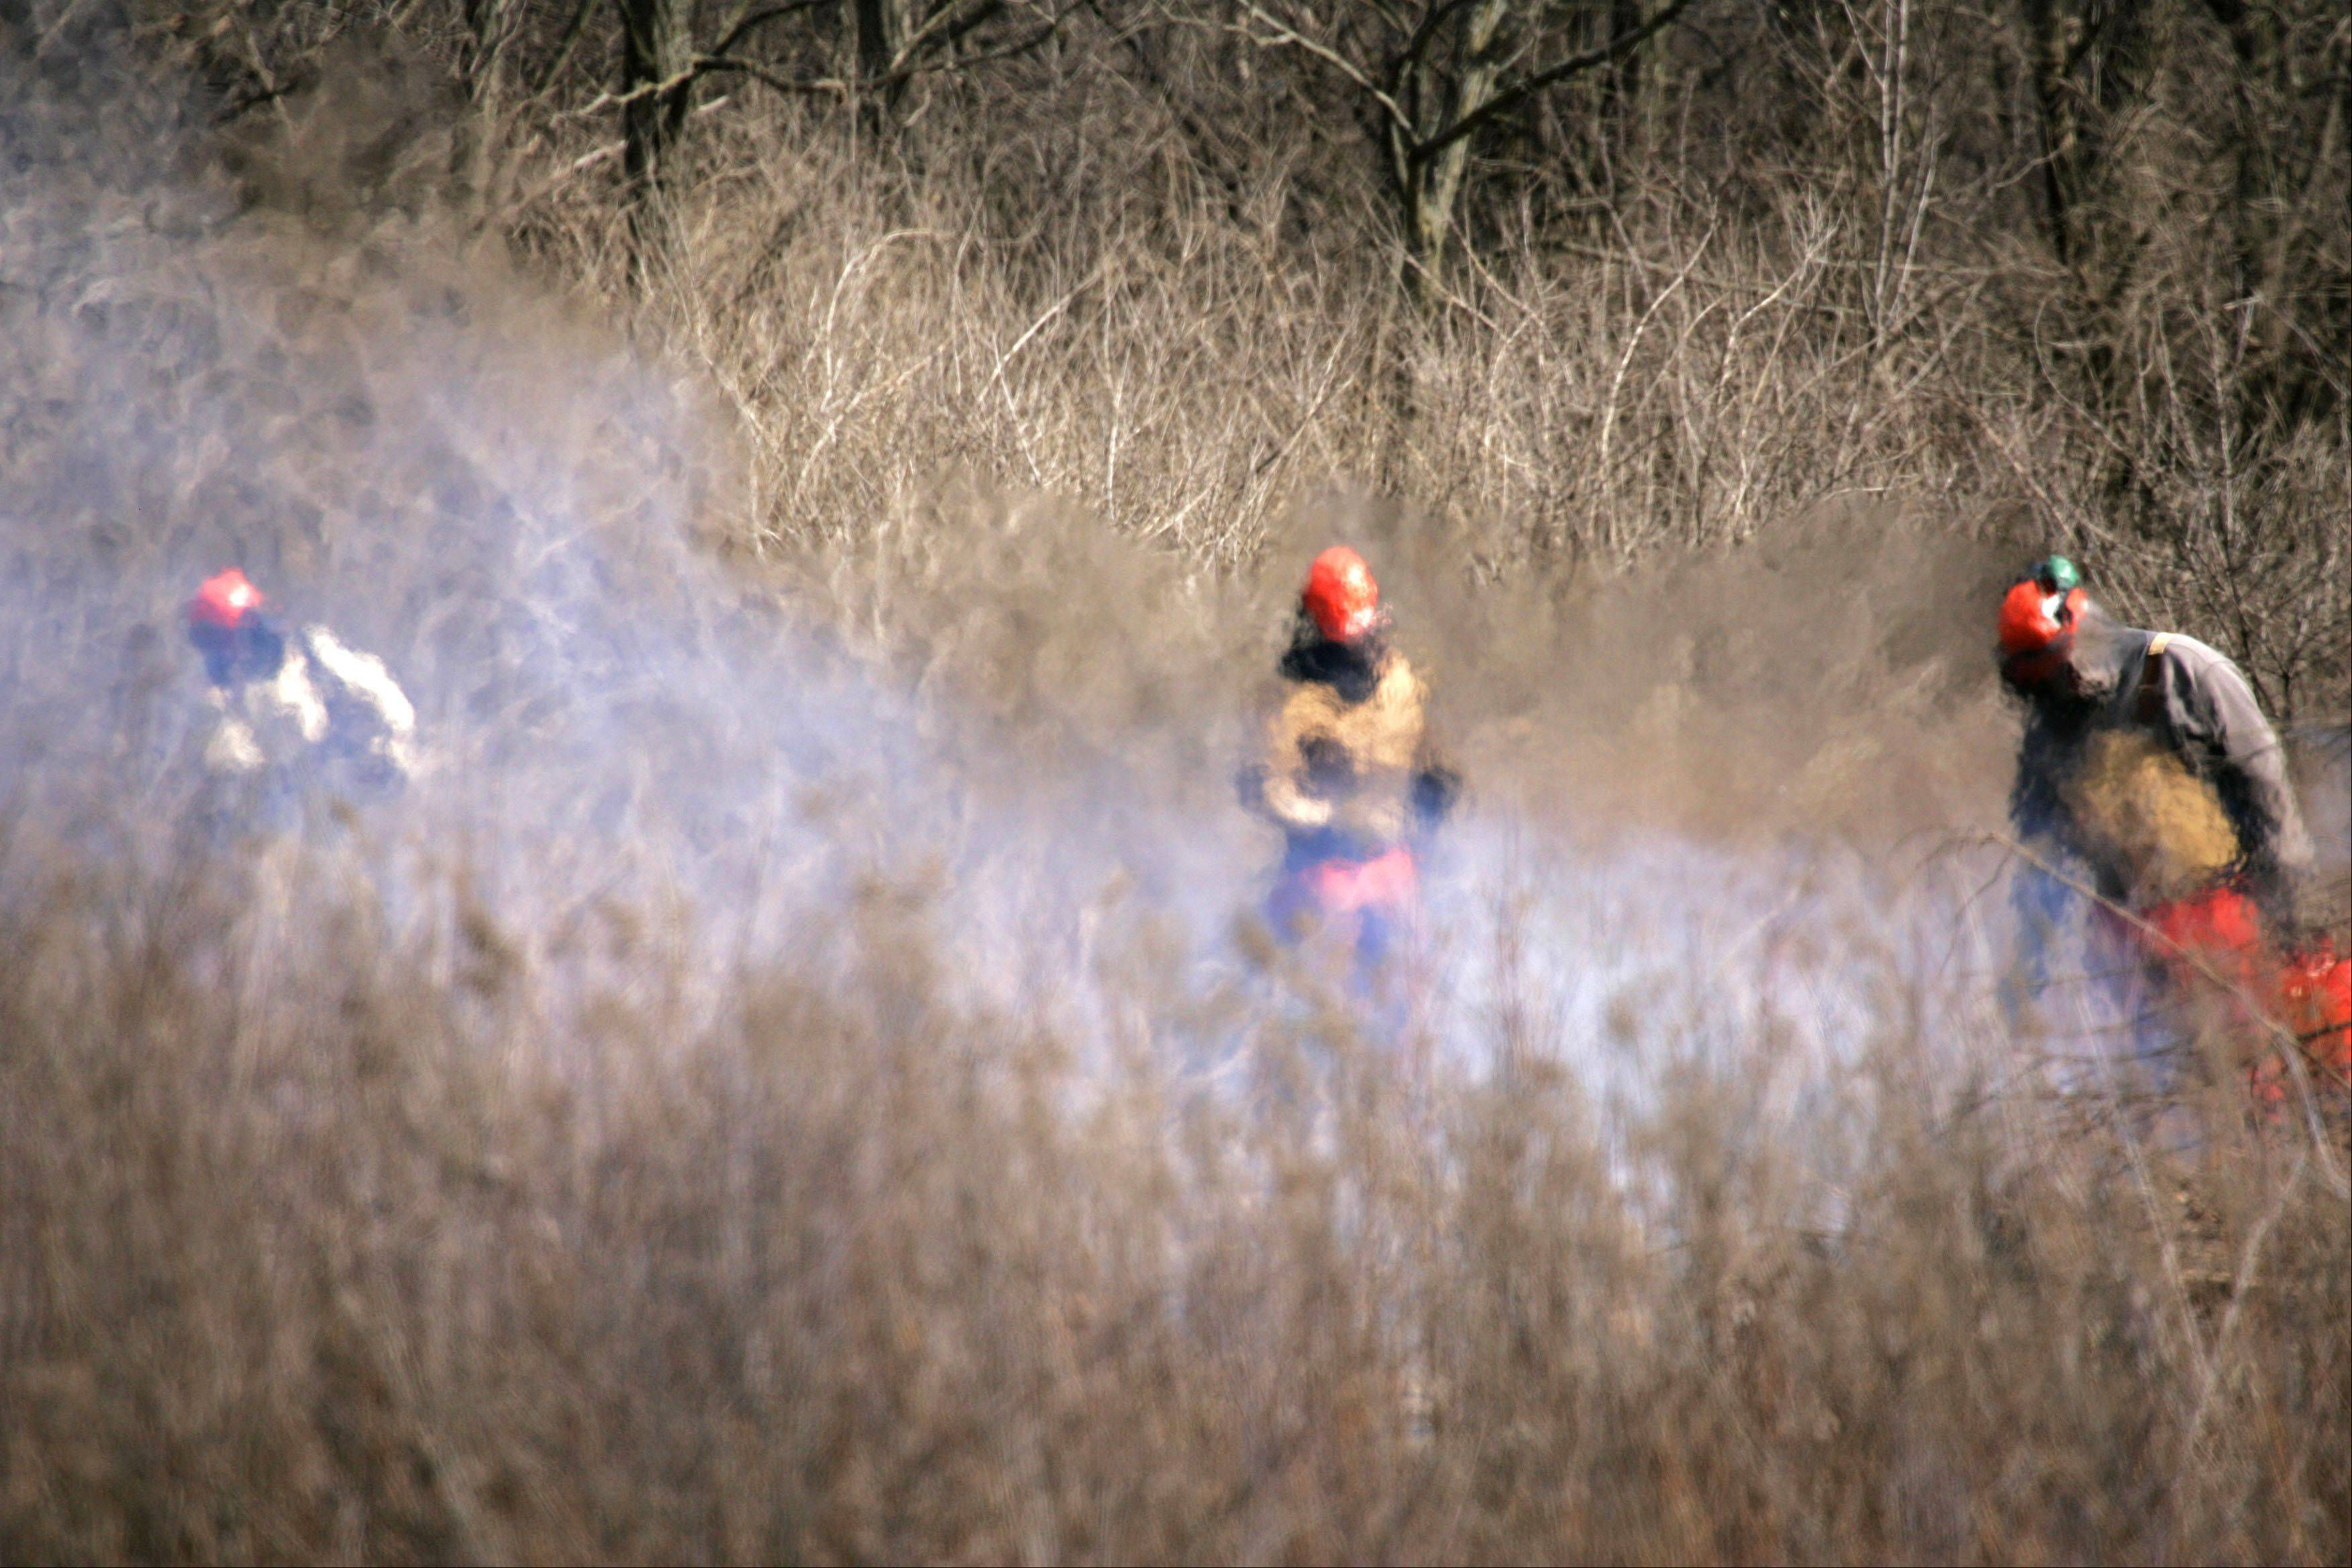 Seen through waves of heat, Restoration Ecologist Benjamin Haberthur and part of his team of five from the Kane County Forest Preserve District, removes some of the non-native plant species from the Leroy Oakes Forest Preserve in St. Charles Tuesday. The team, which is responsible for more than 10,000 acres, worked on clearing about six acres of honeysuckle and buckthorn at the St. Charles park.